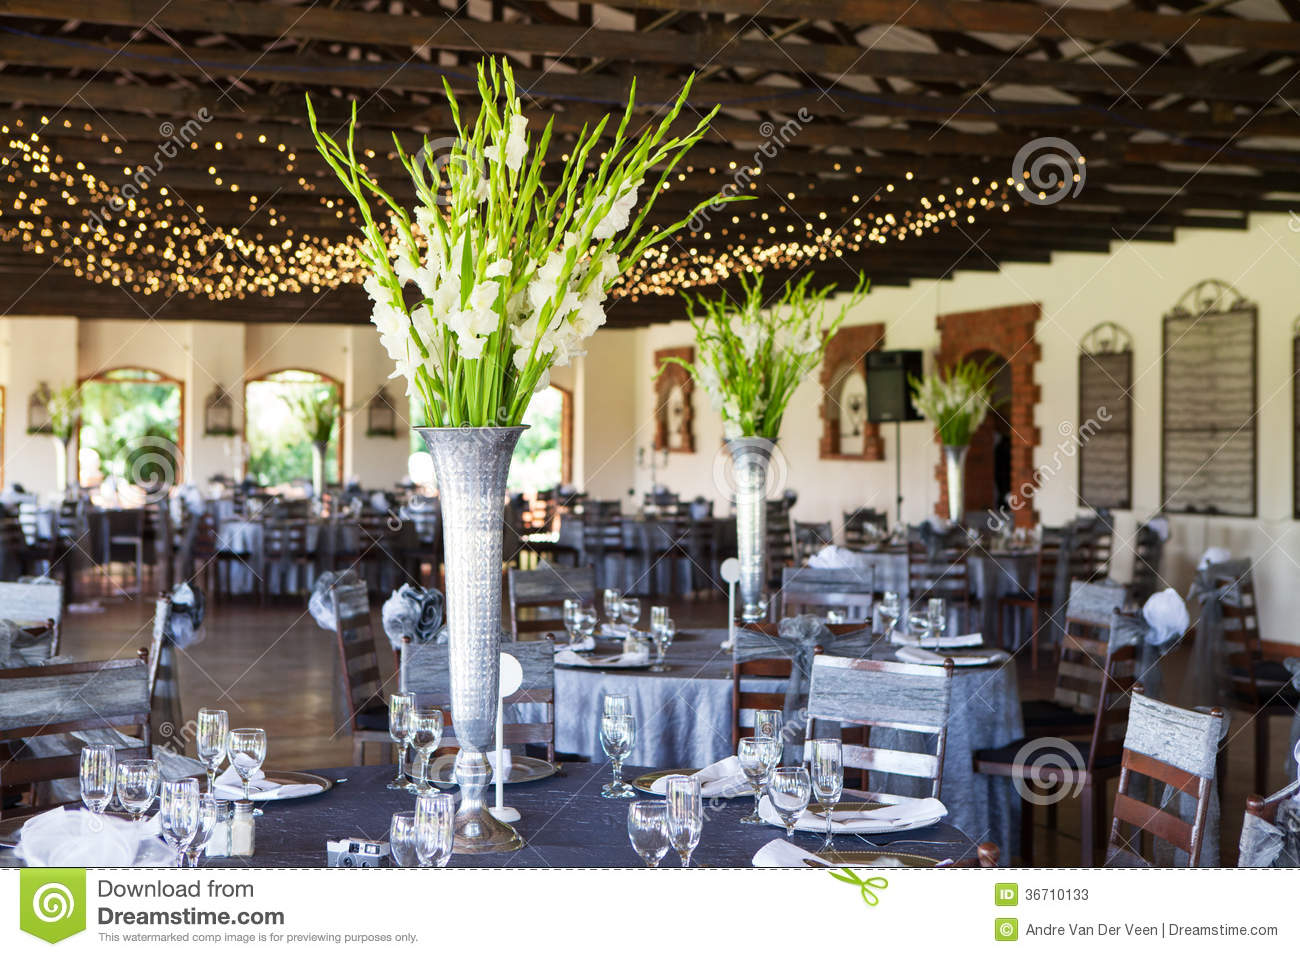 Decorated Tables Gorgeous Wedding Reception Venue With Decorated Tables And Fairy Lights Design Decoration